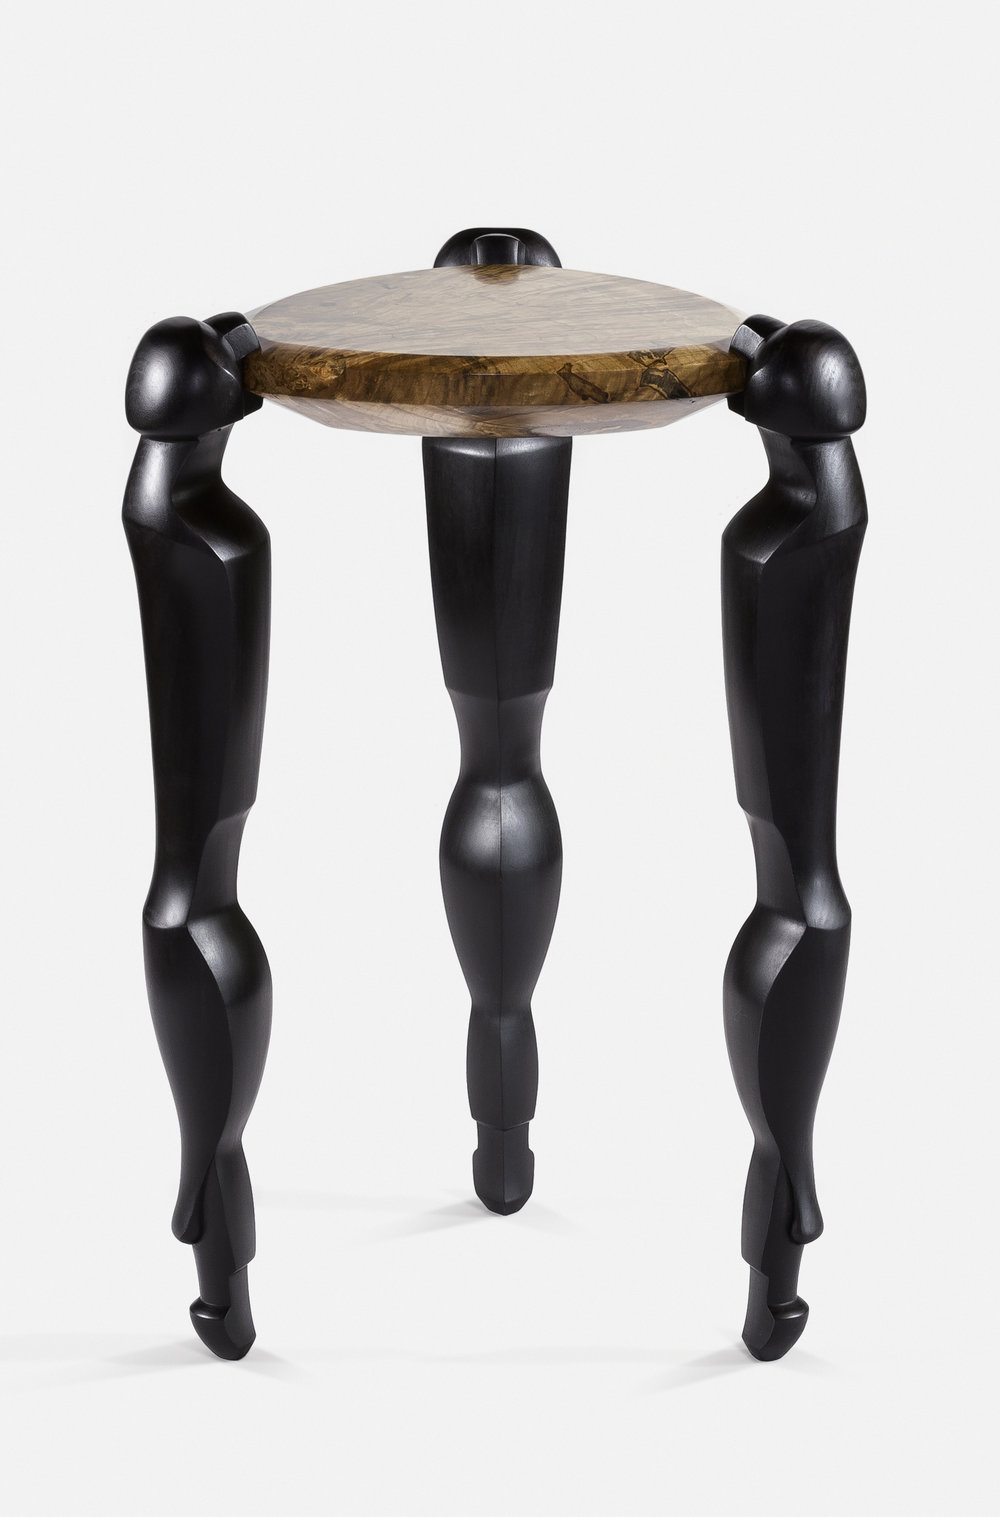 2_Carpenter_Jaguar Table_1.jpg